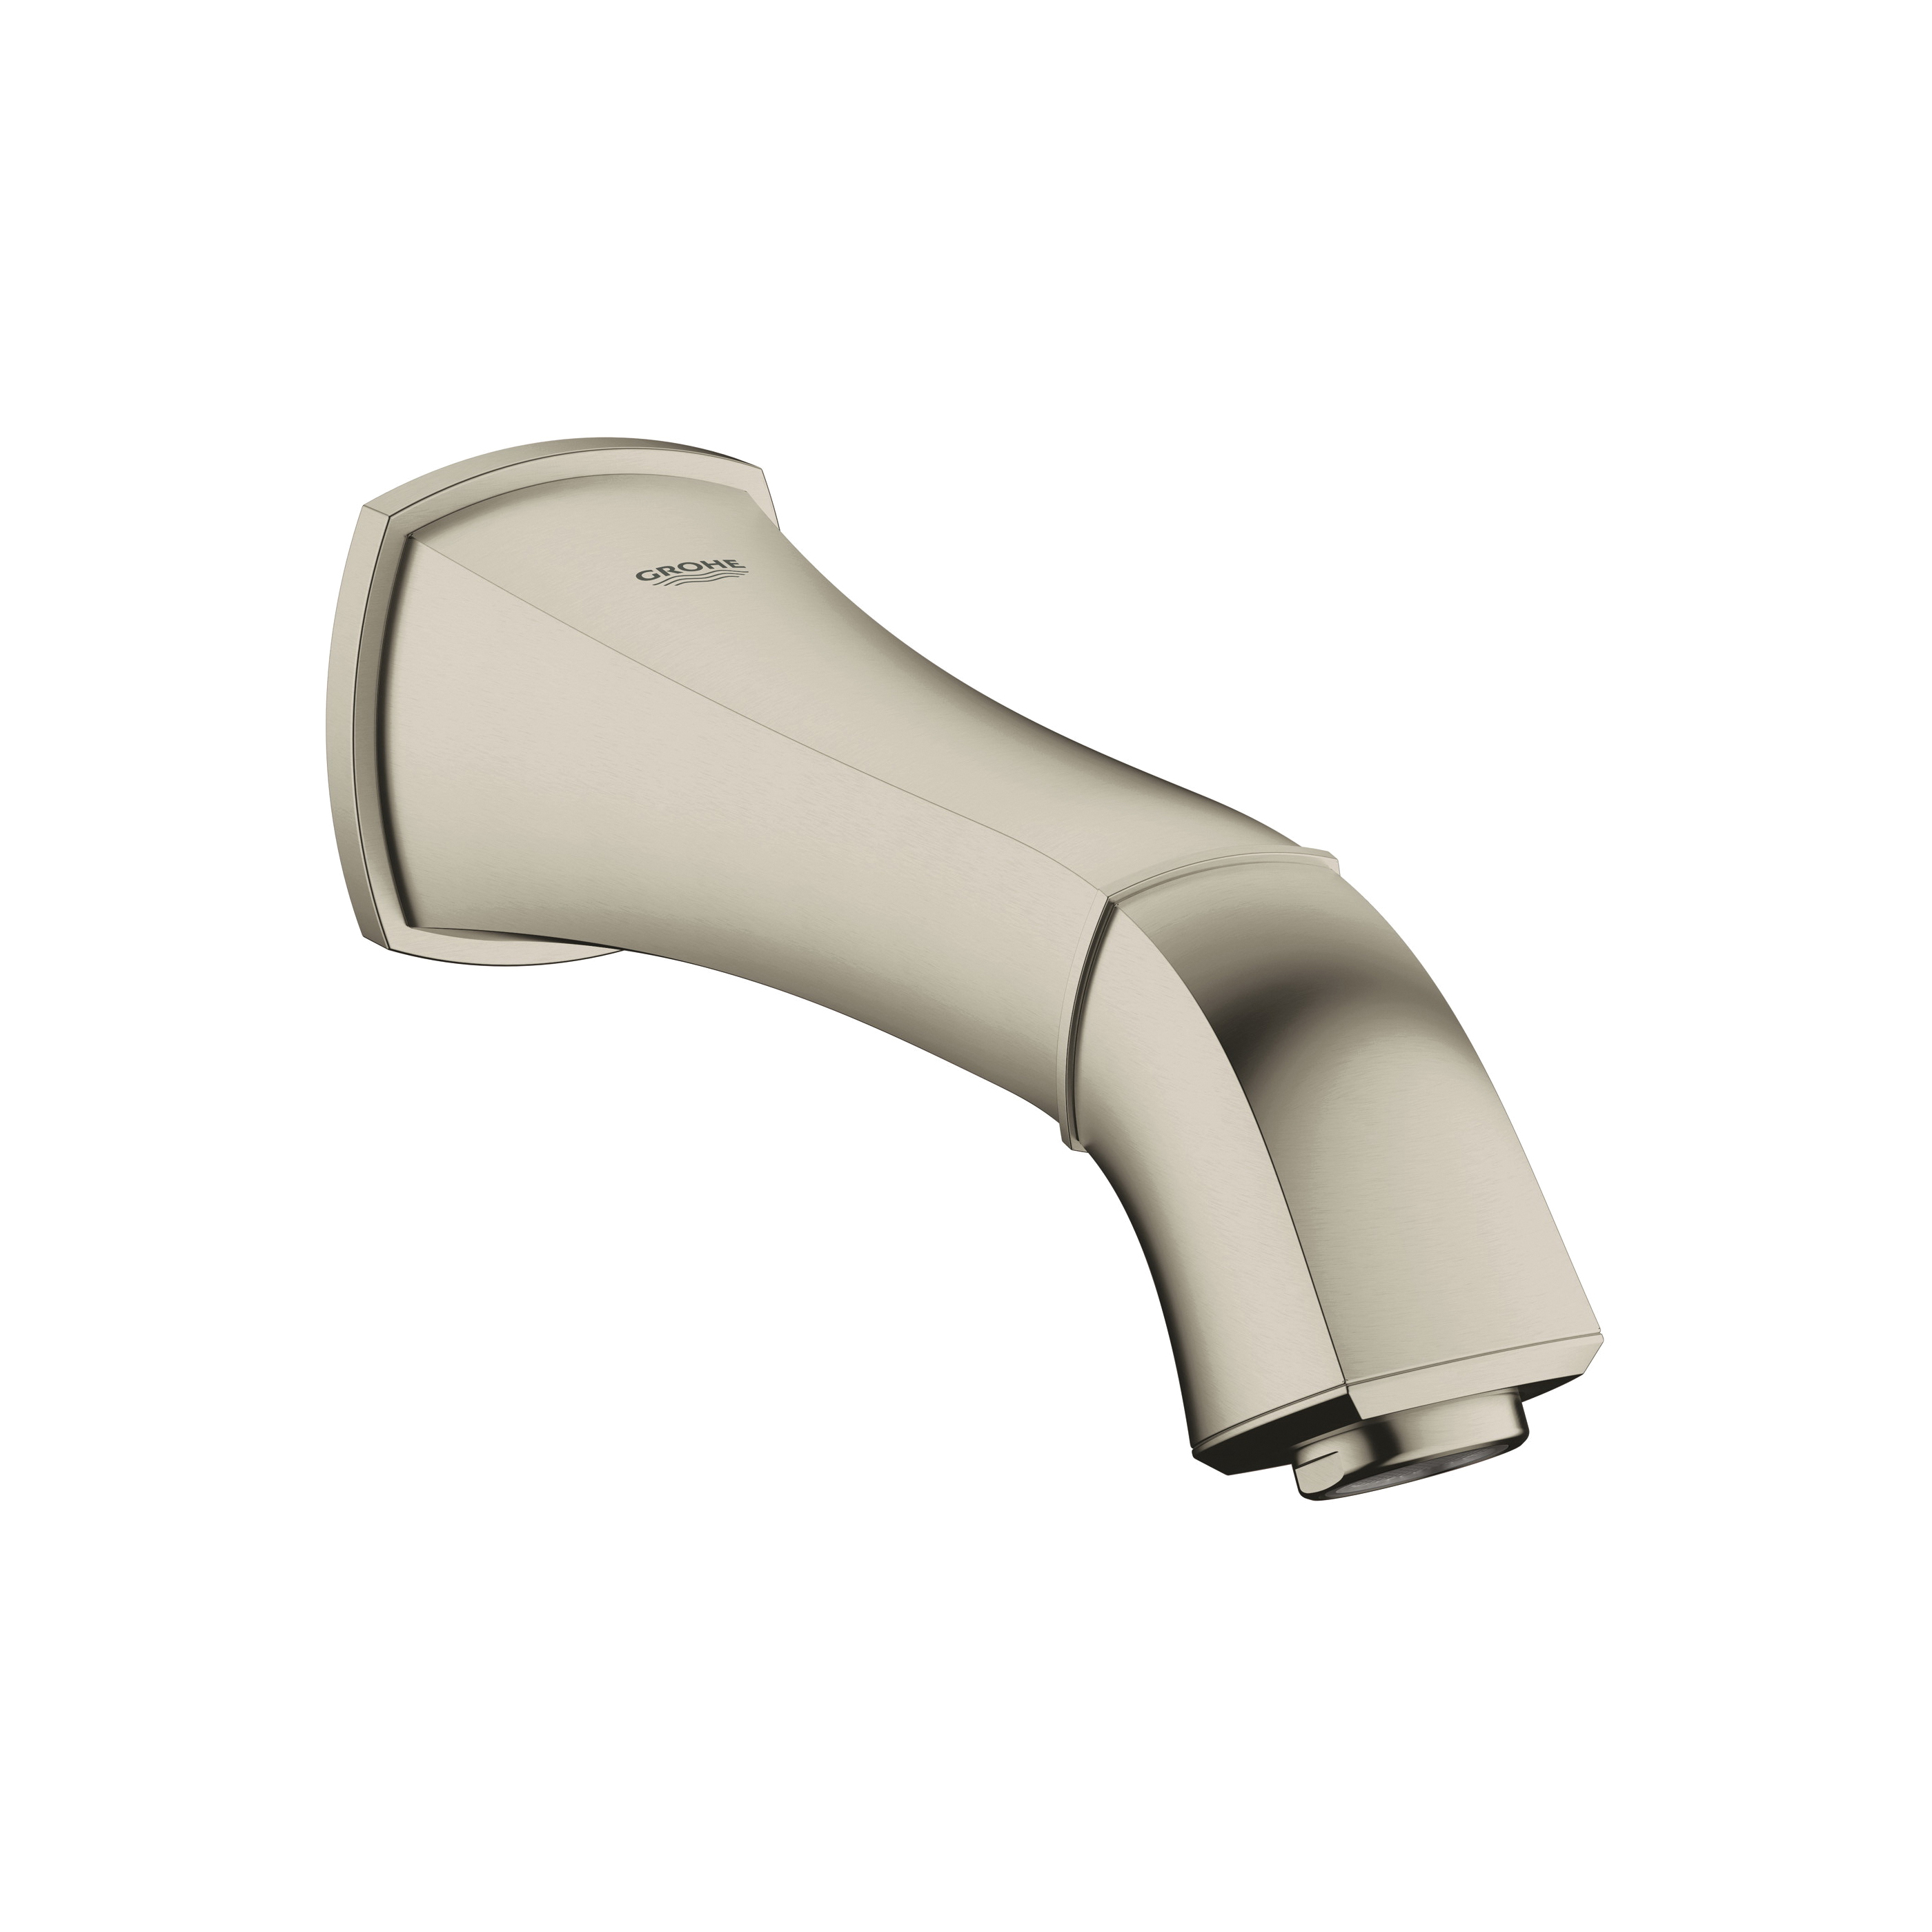 GROHE 13342EN0 Grandera™ Wall Mounted Tub Spout With Flow Control, StarLight® Brushed Nickel, Import